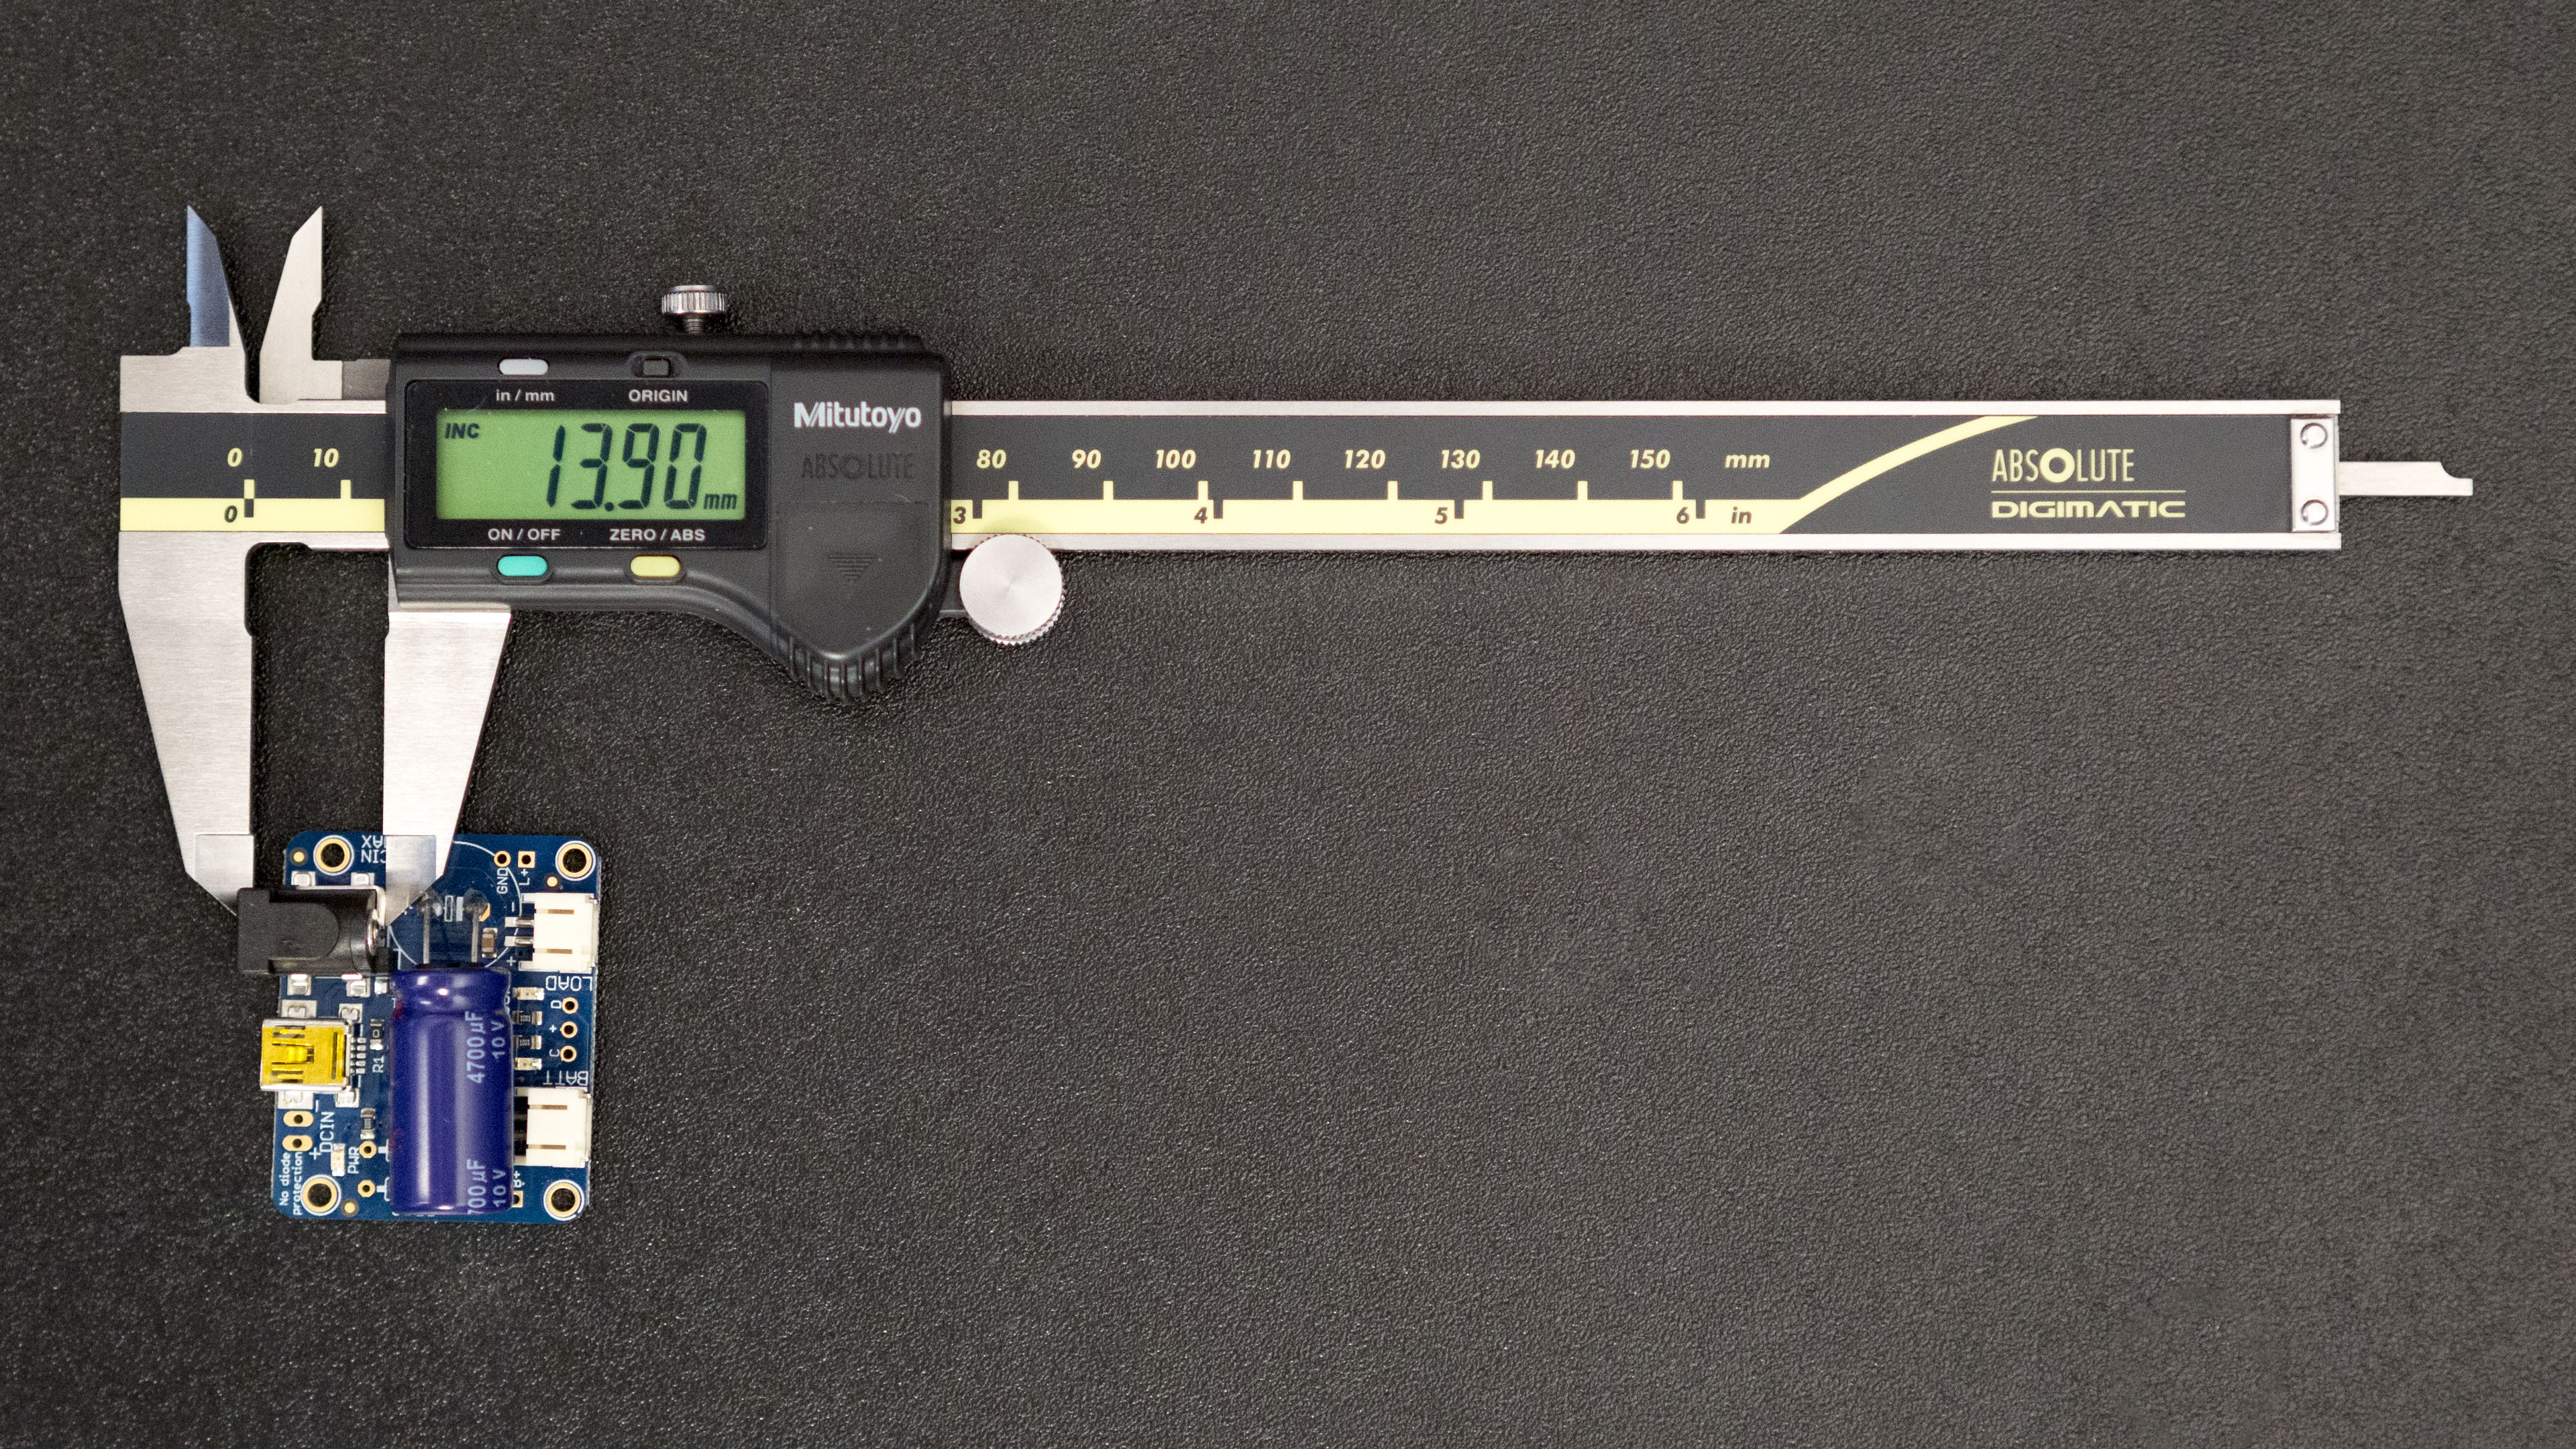 Mitutoyo Calipers for Measuring Things